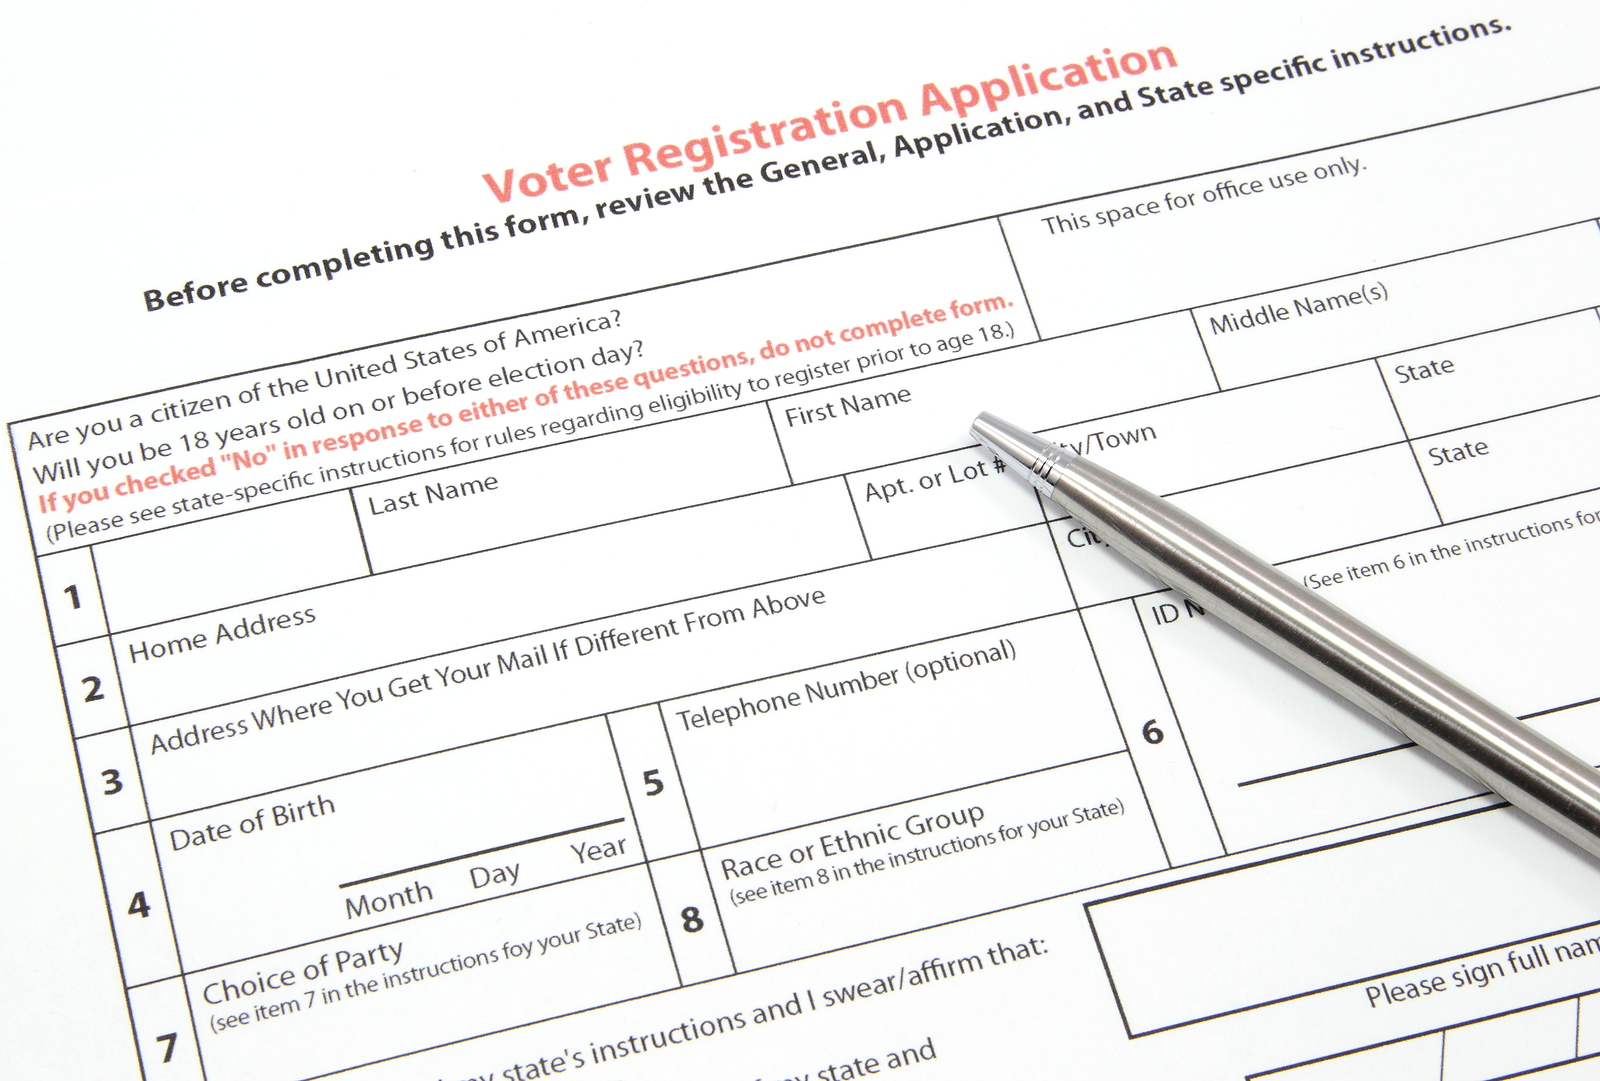 Today is the deadline to register to vote in June primary